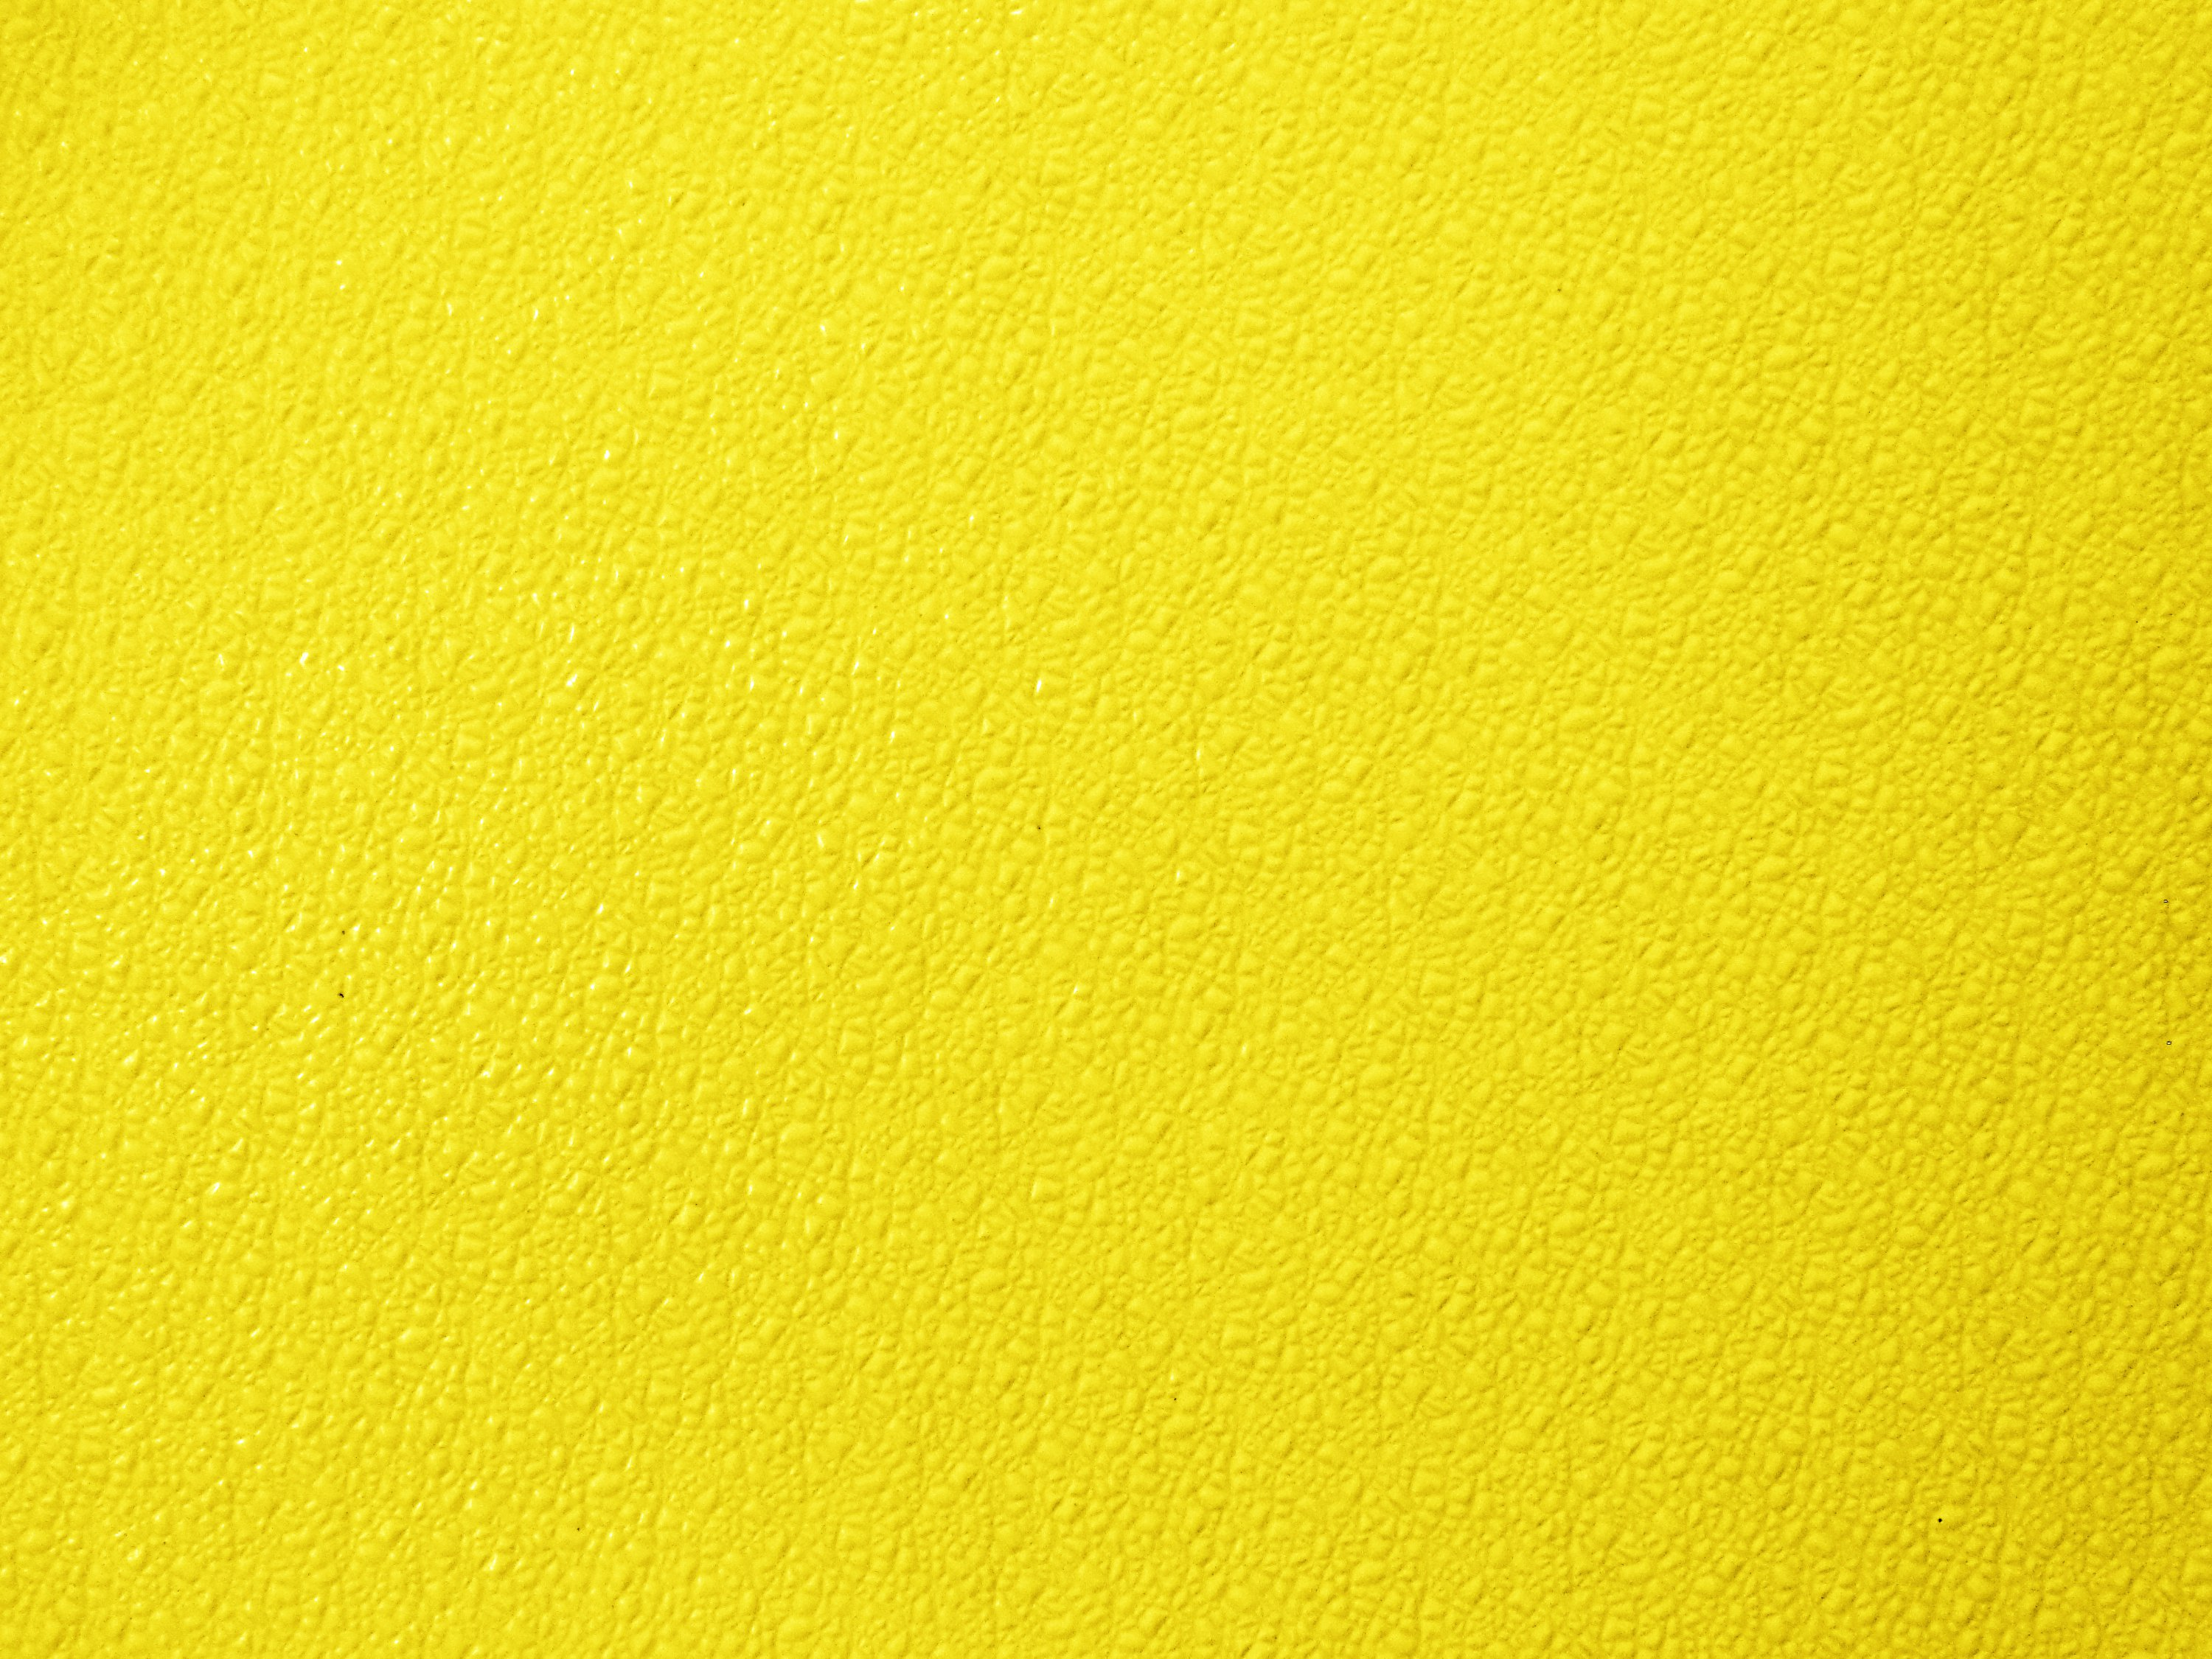 yellow texture background #952